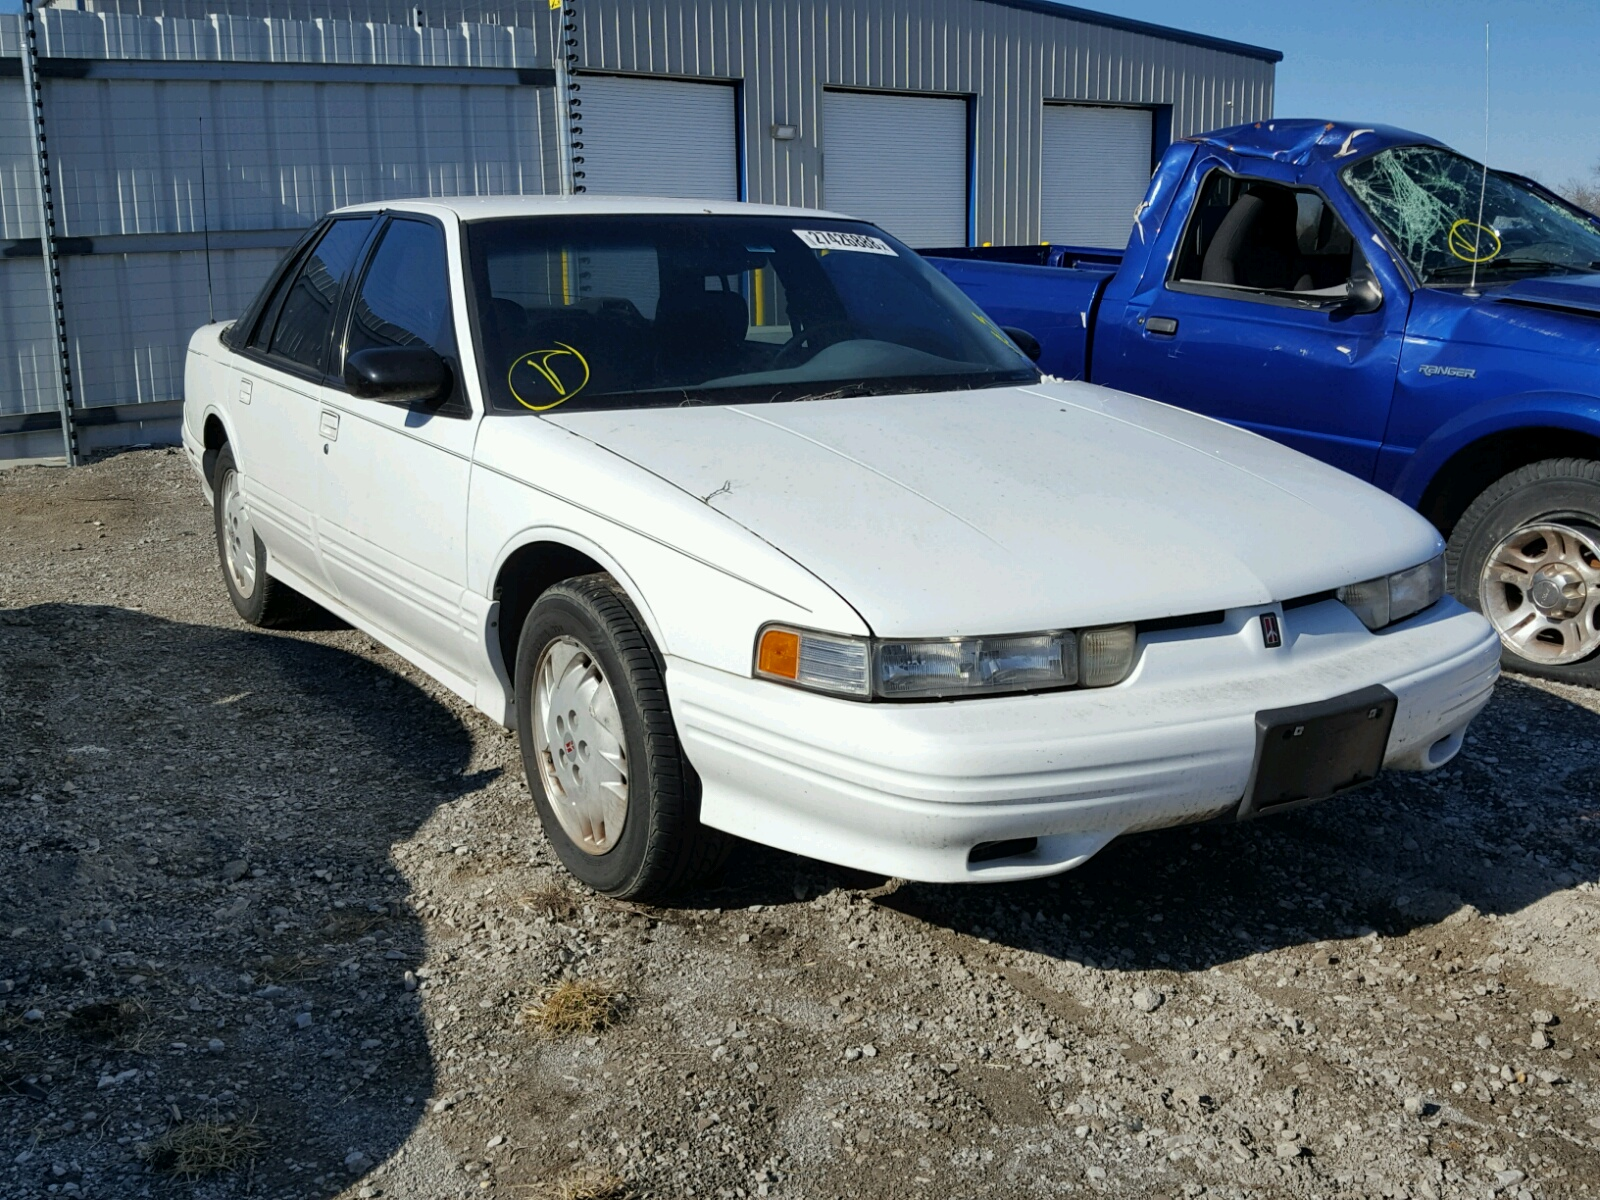 Salvaged OLDSMOBILE CUTLASS for Auction - AutoBidMaster